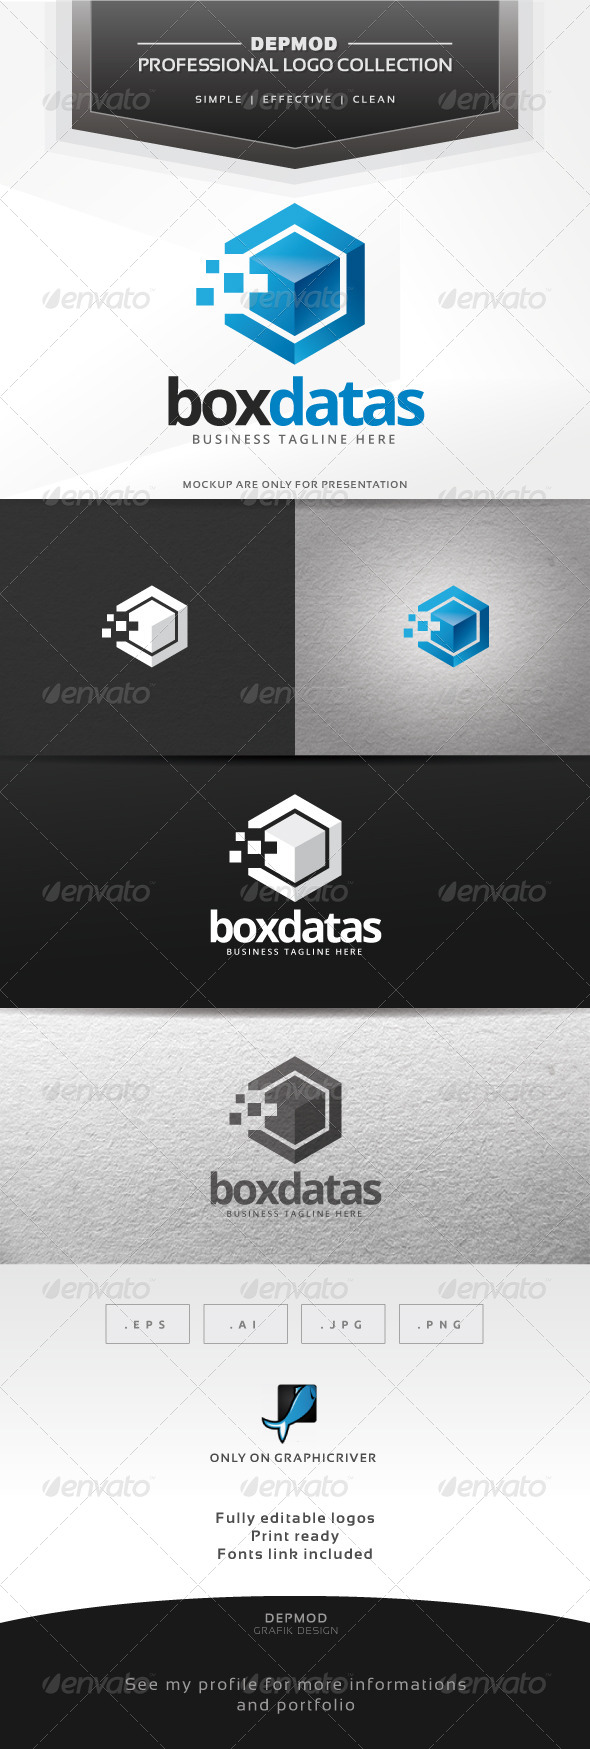 Box Datas Logo - Abstract Logo Templates